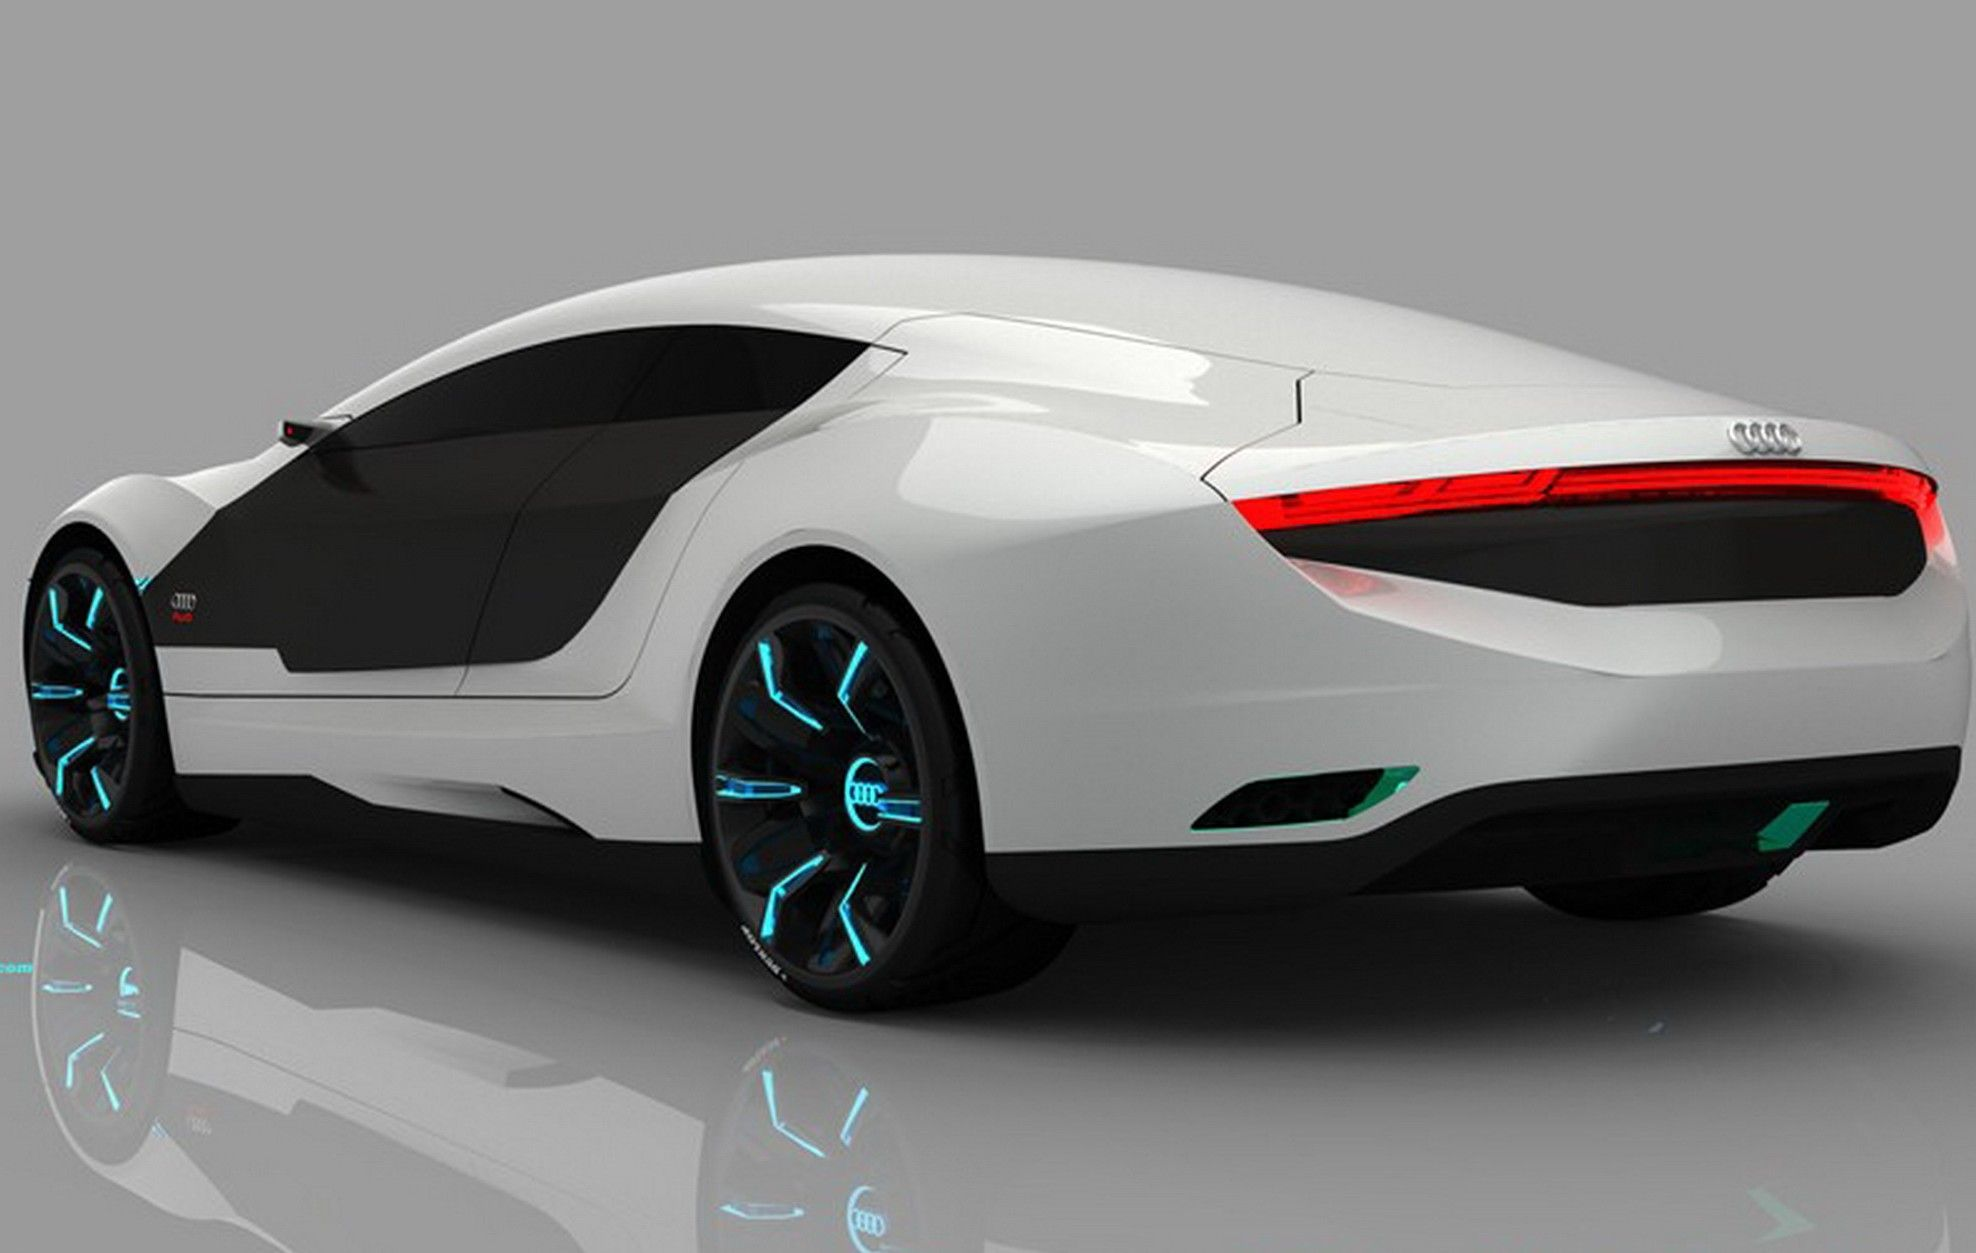 Likely cars of the future likely cars of the future http www - The Brainchild Of Spanish Car Designer Daniel Garcia The Audi Concept Is A Low Emission Hybrid Vehicle For The Future